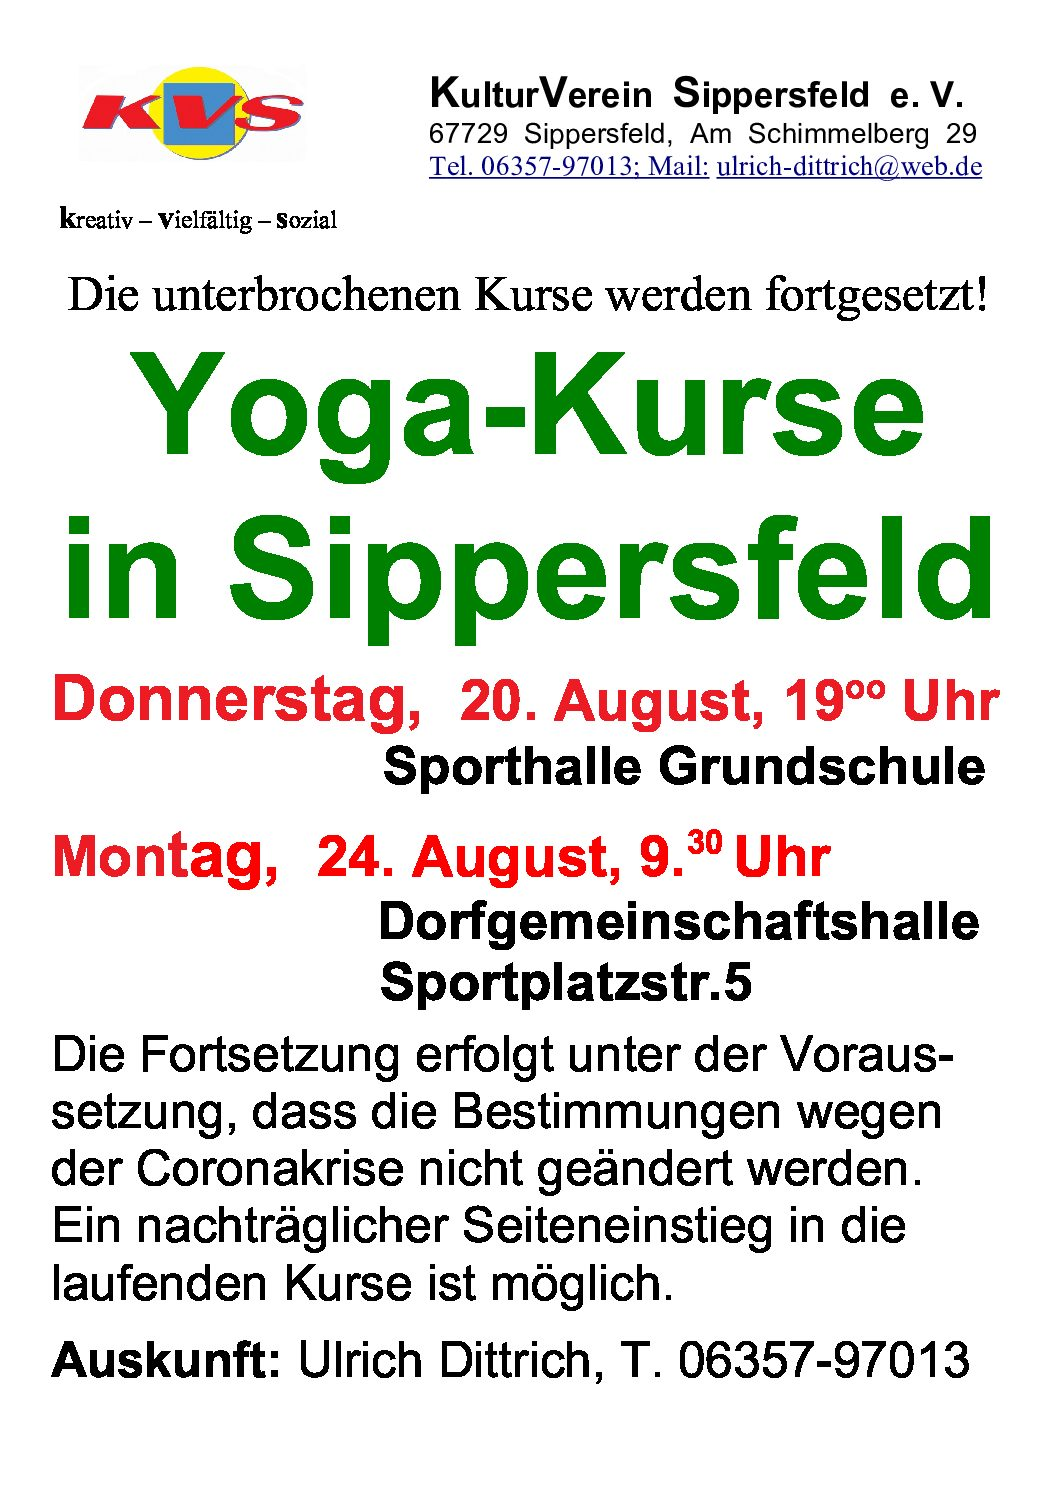 Yoga-Kurse in Sippersfeld